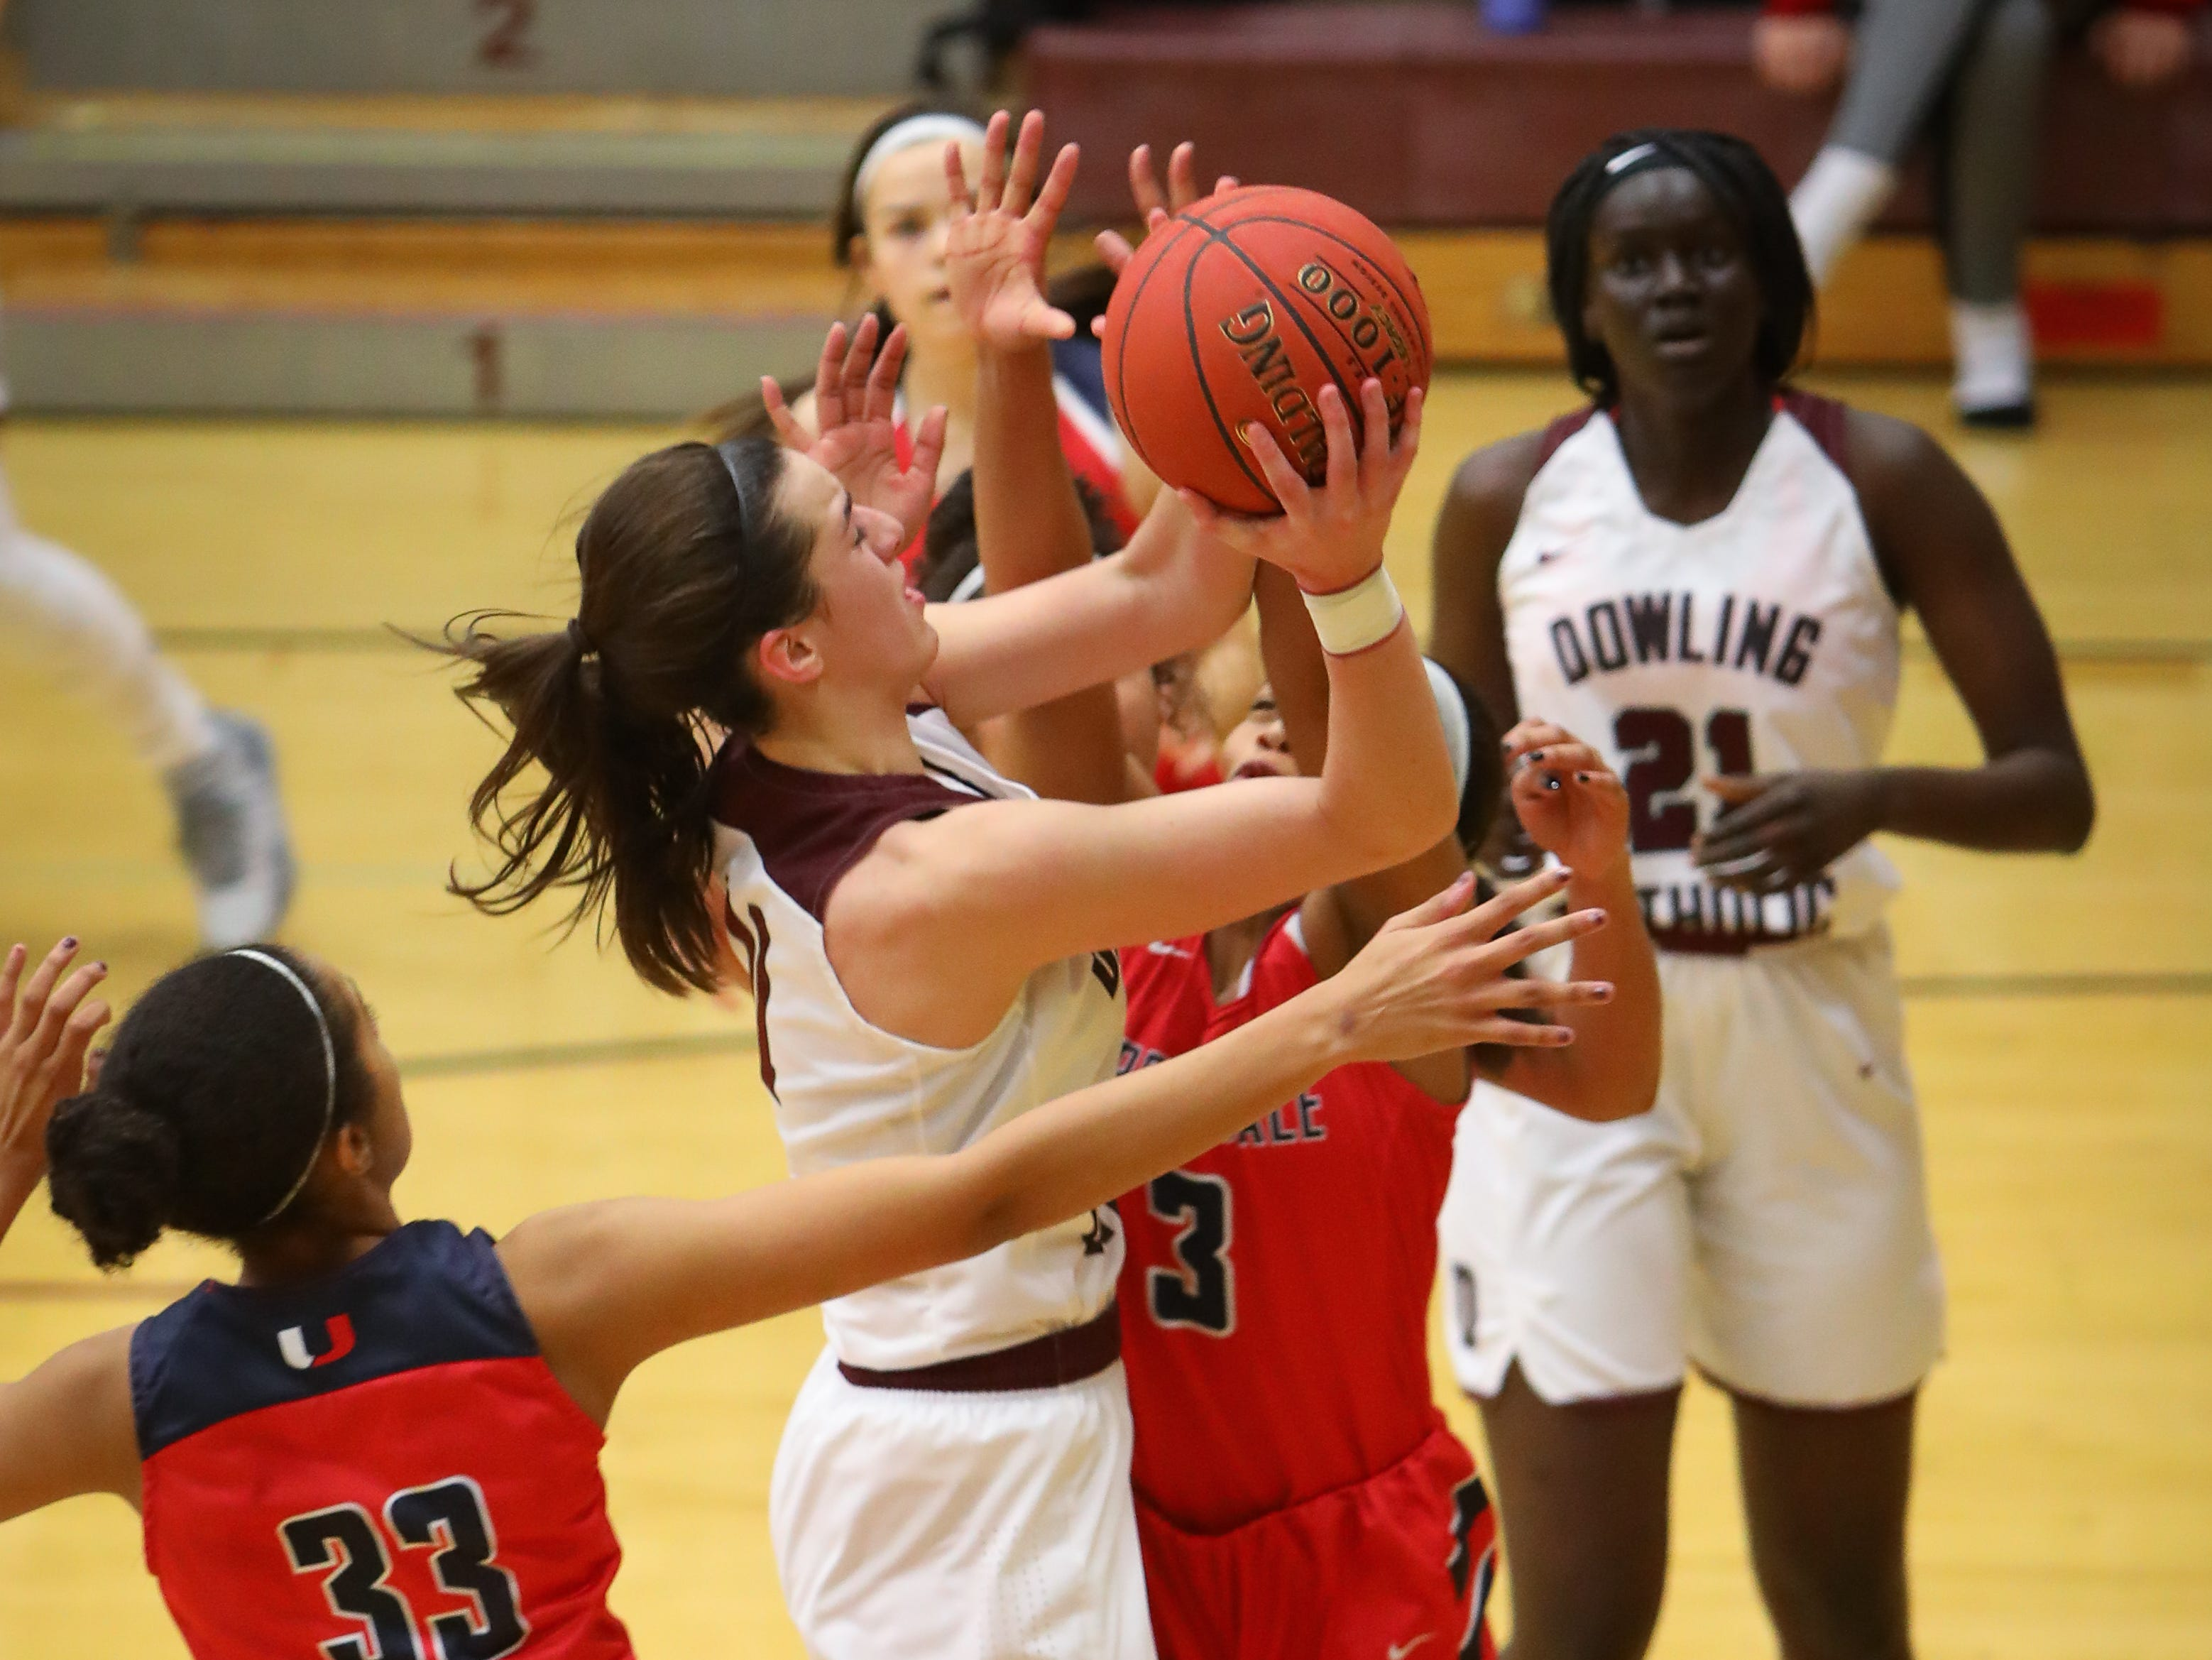 Dowling junior Caitlin Clark goes for a layup during a girls high school basketball game between the Urbandale J-Hawks and the Dowling Catholic Maroons at Dowling Catholic High School on Jan. 11, 2019 in West Des Moines, Iowa. Clark went on to score 46 points in the game.